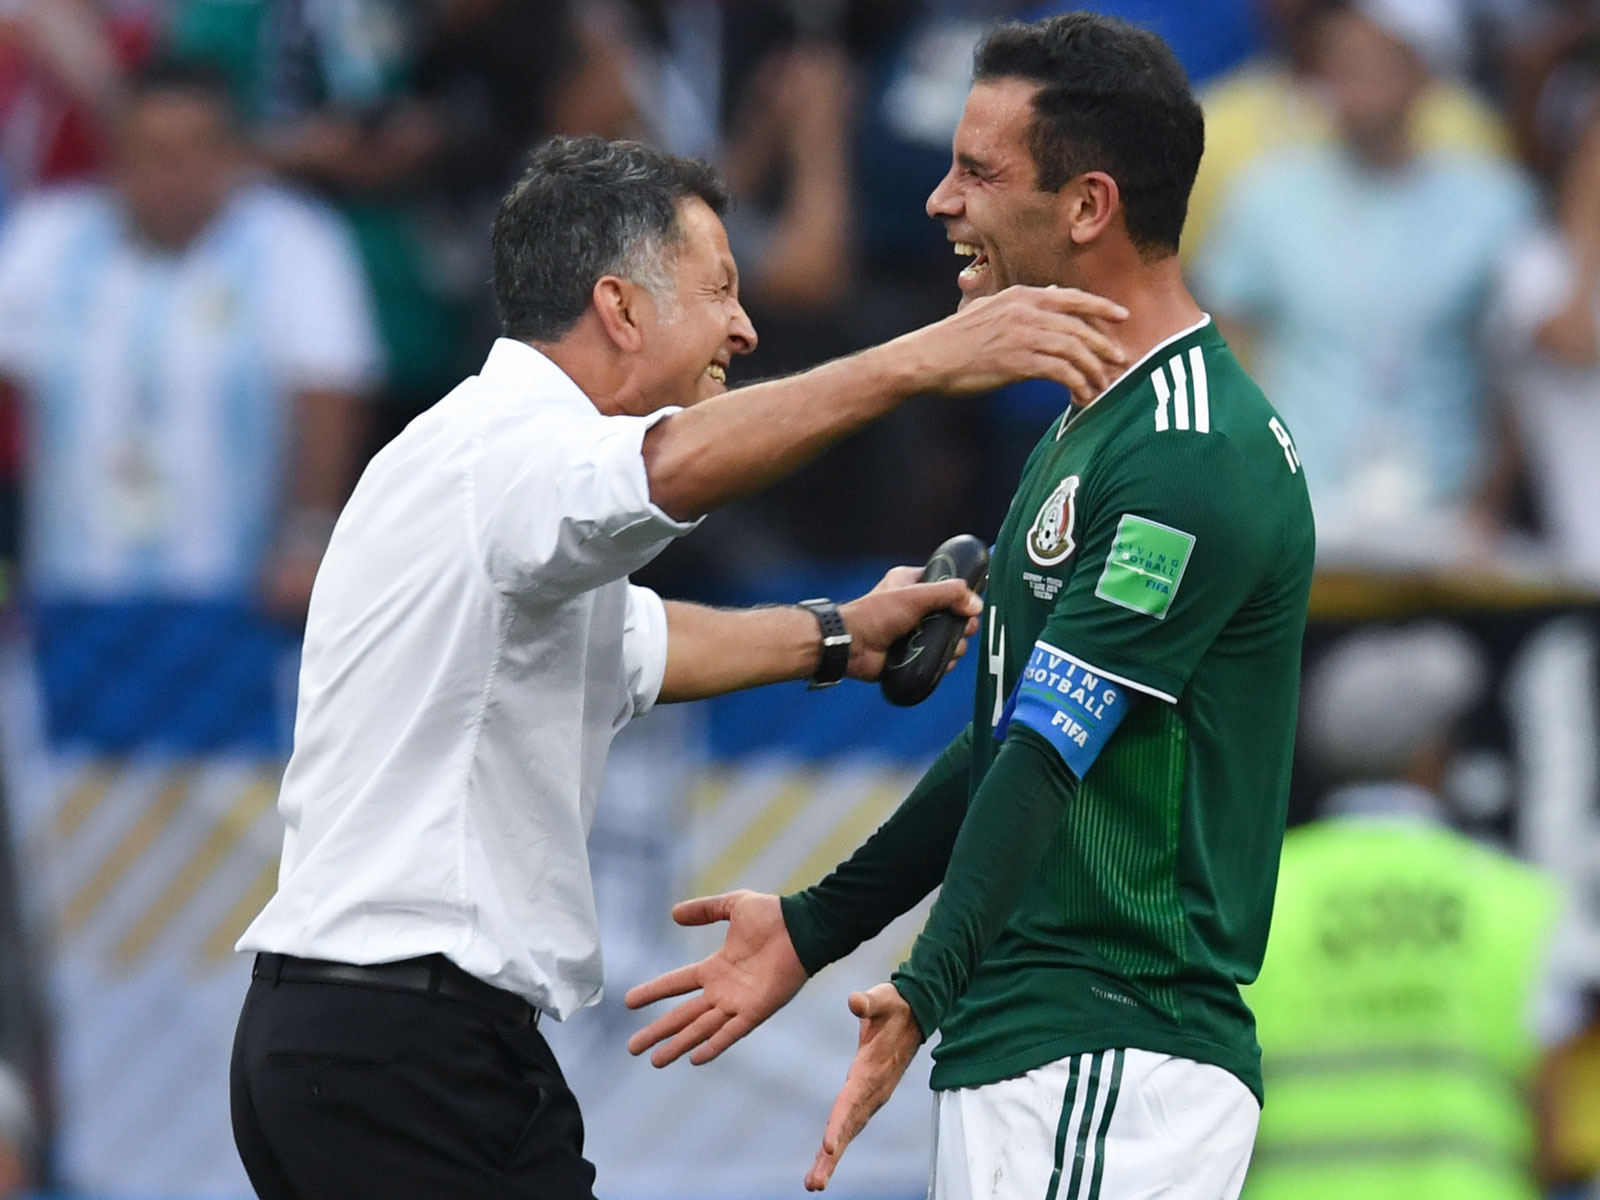 Juan Carlos Osorio and Rafa Marquez embrace after Mexico's win over Germany at the World Cup